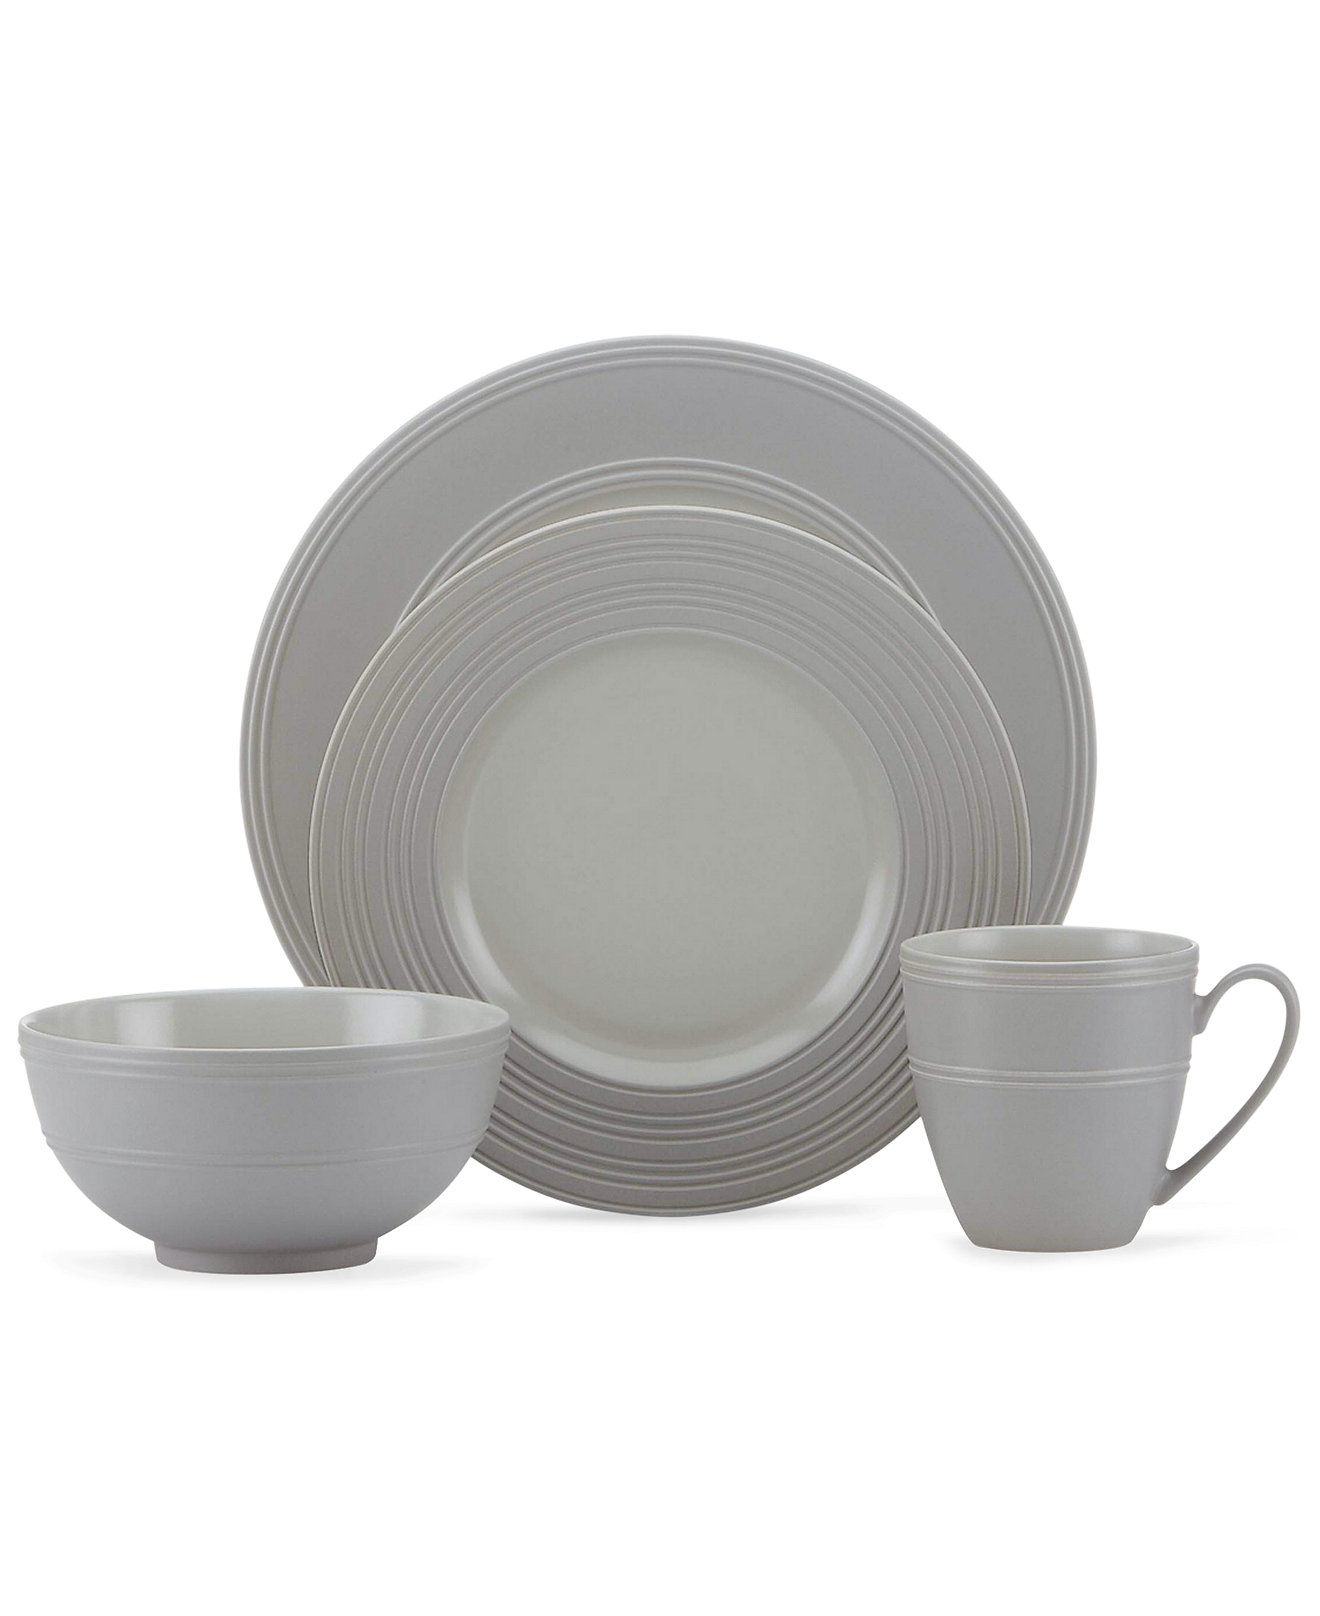 Kate Spade Hopscotch Dinnerware | Kate Spade China | Crystal Dinnerware Set